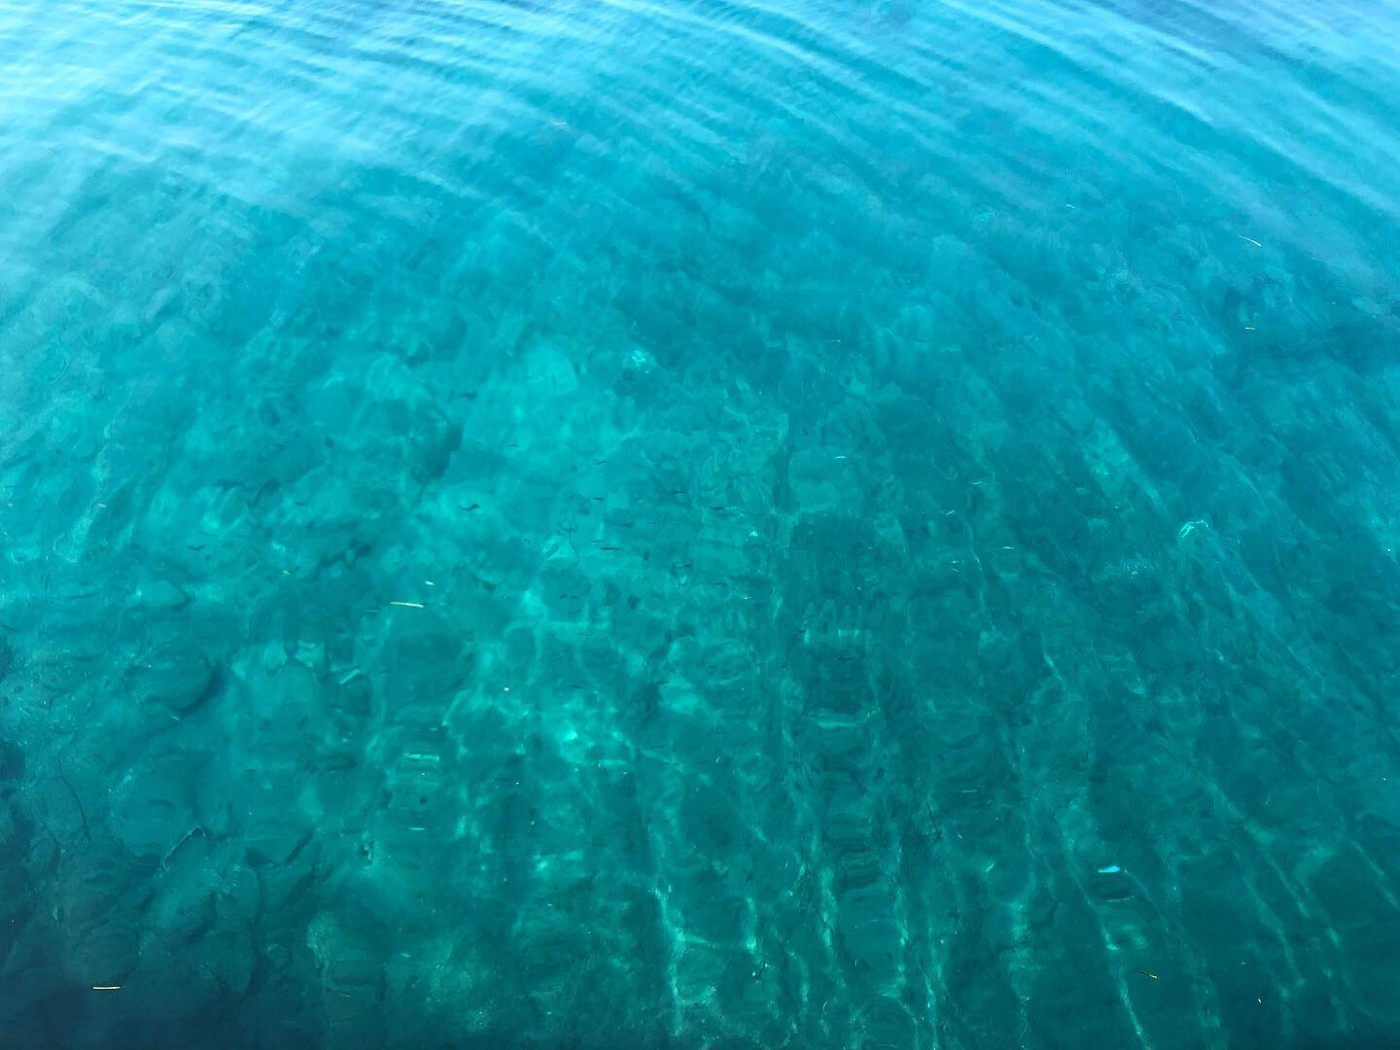 Looking down through the aquamarine waters surrounding the Cyclades.